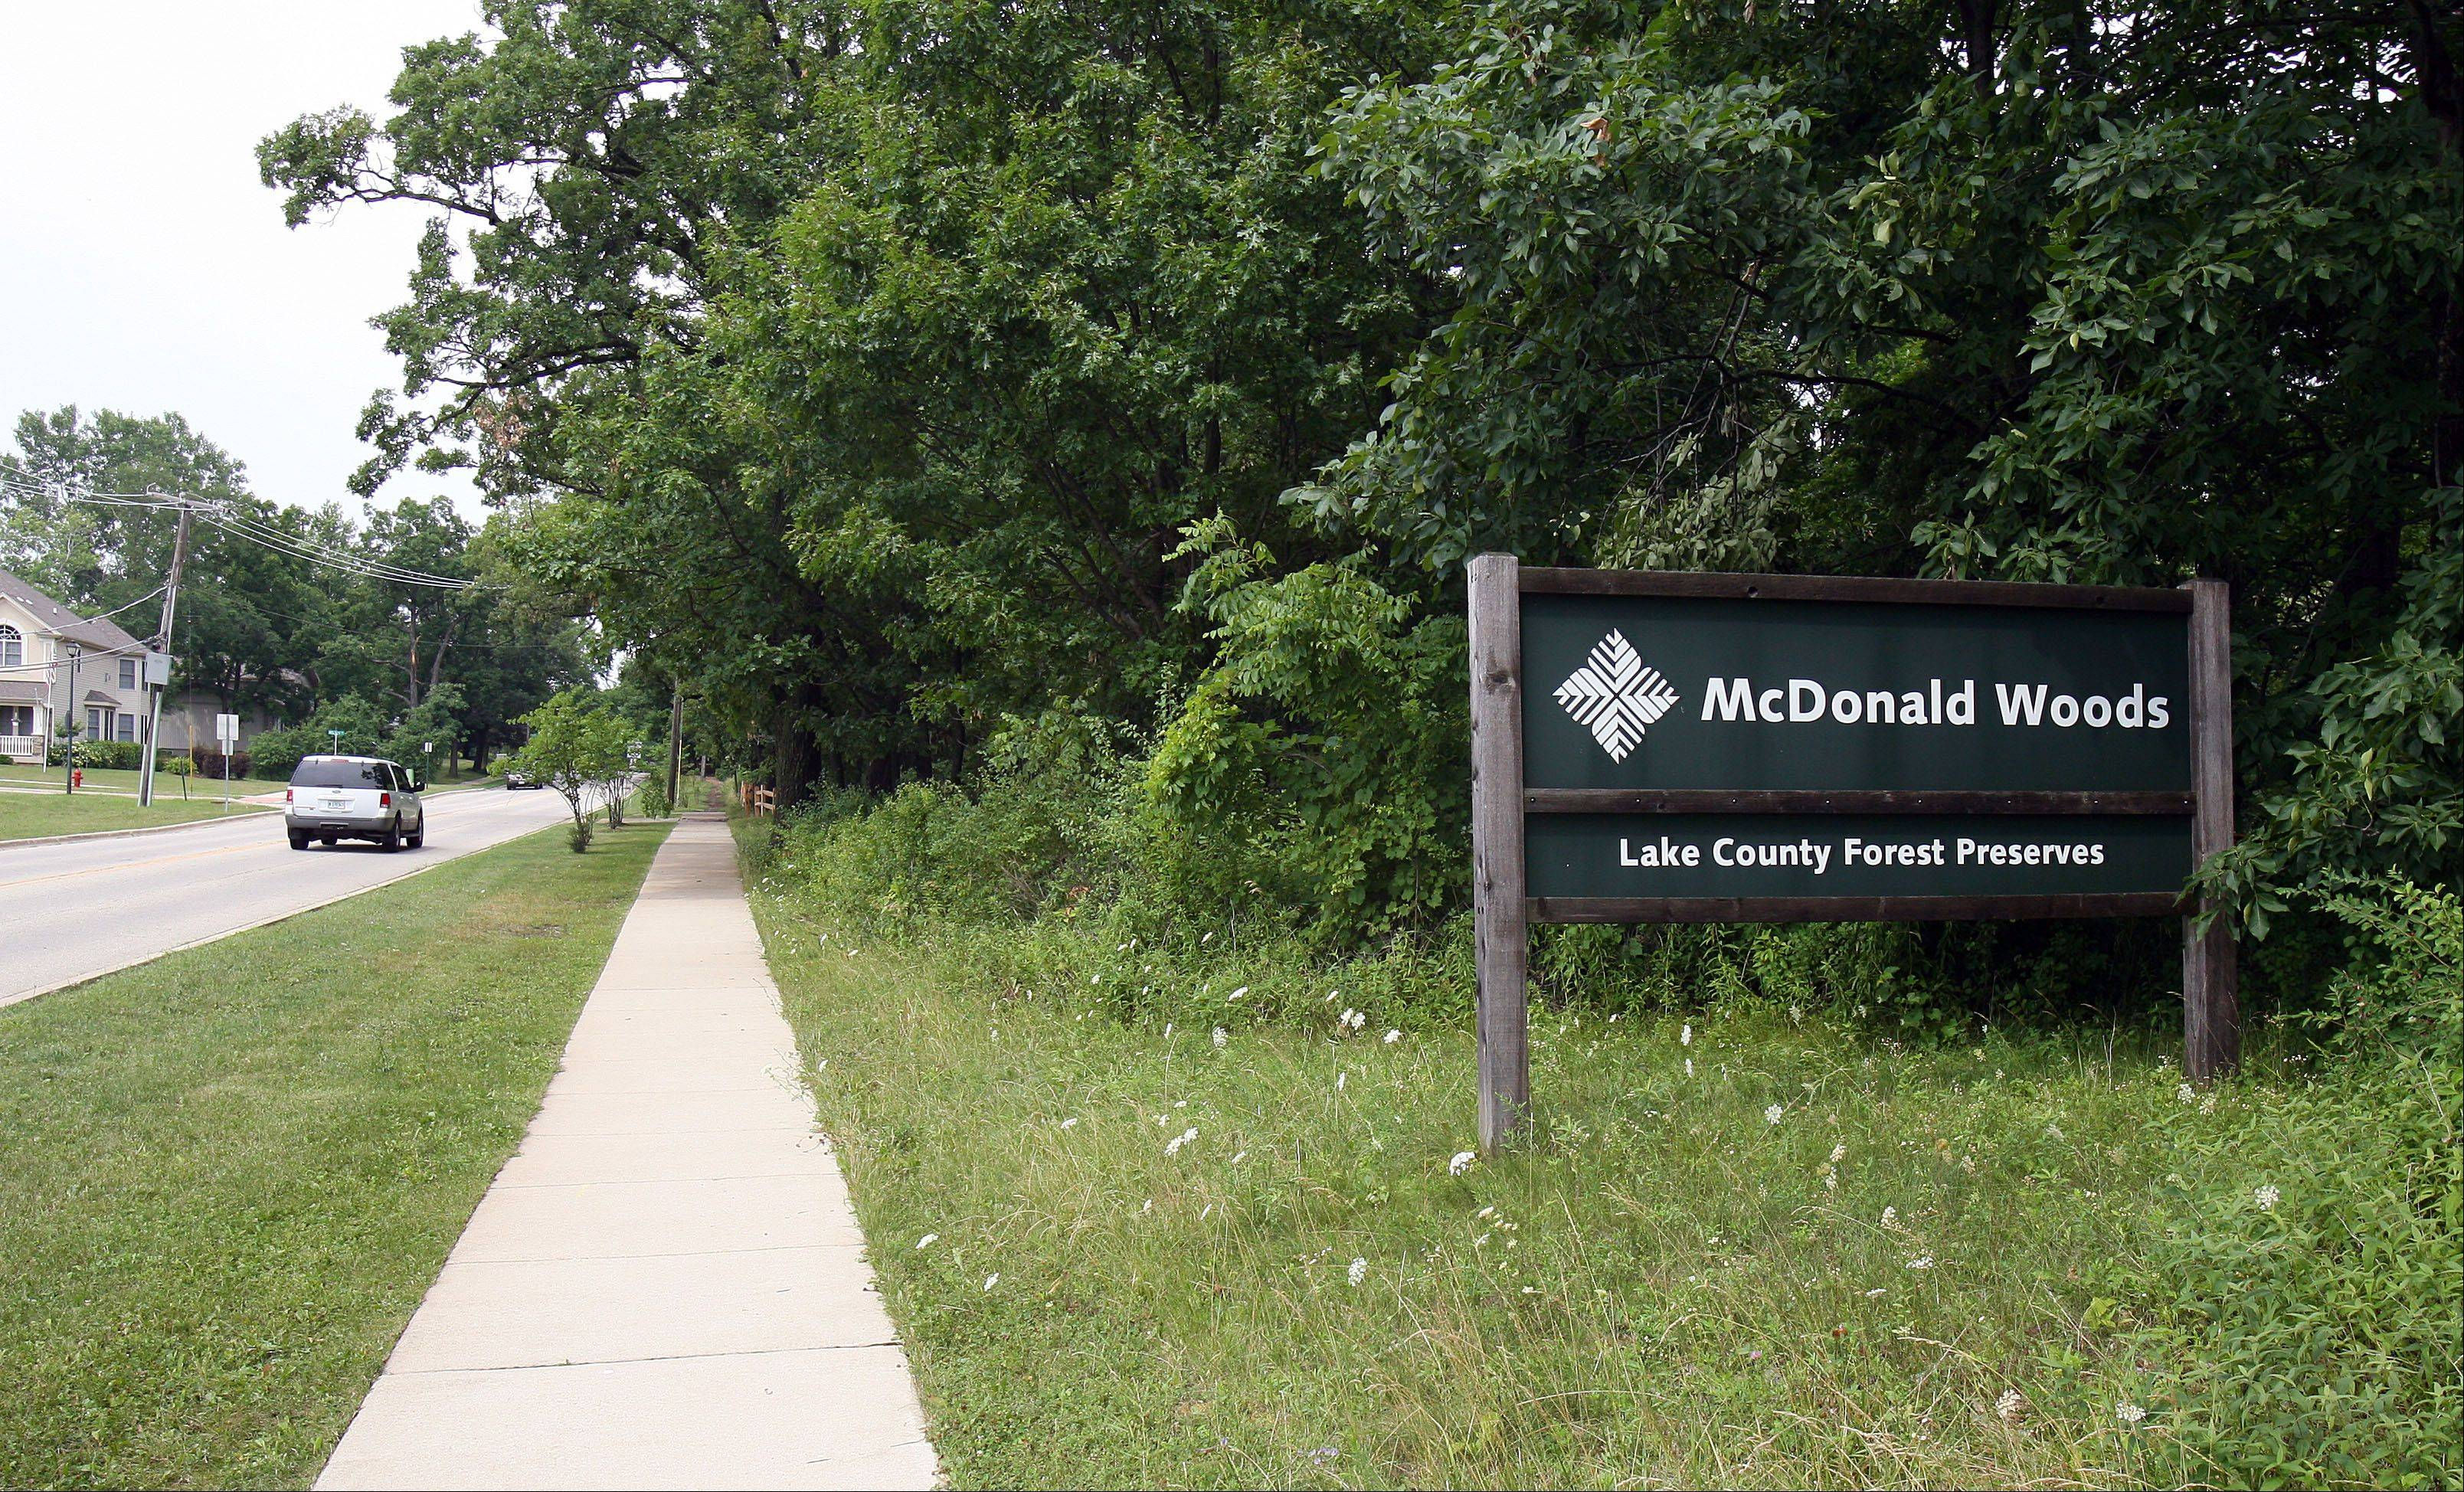 McDonalds Woods forest preserve near The Preserves in Lindenhurst.